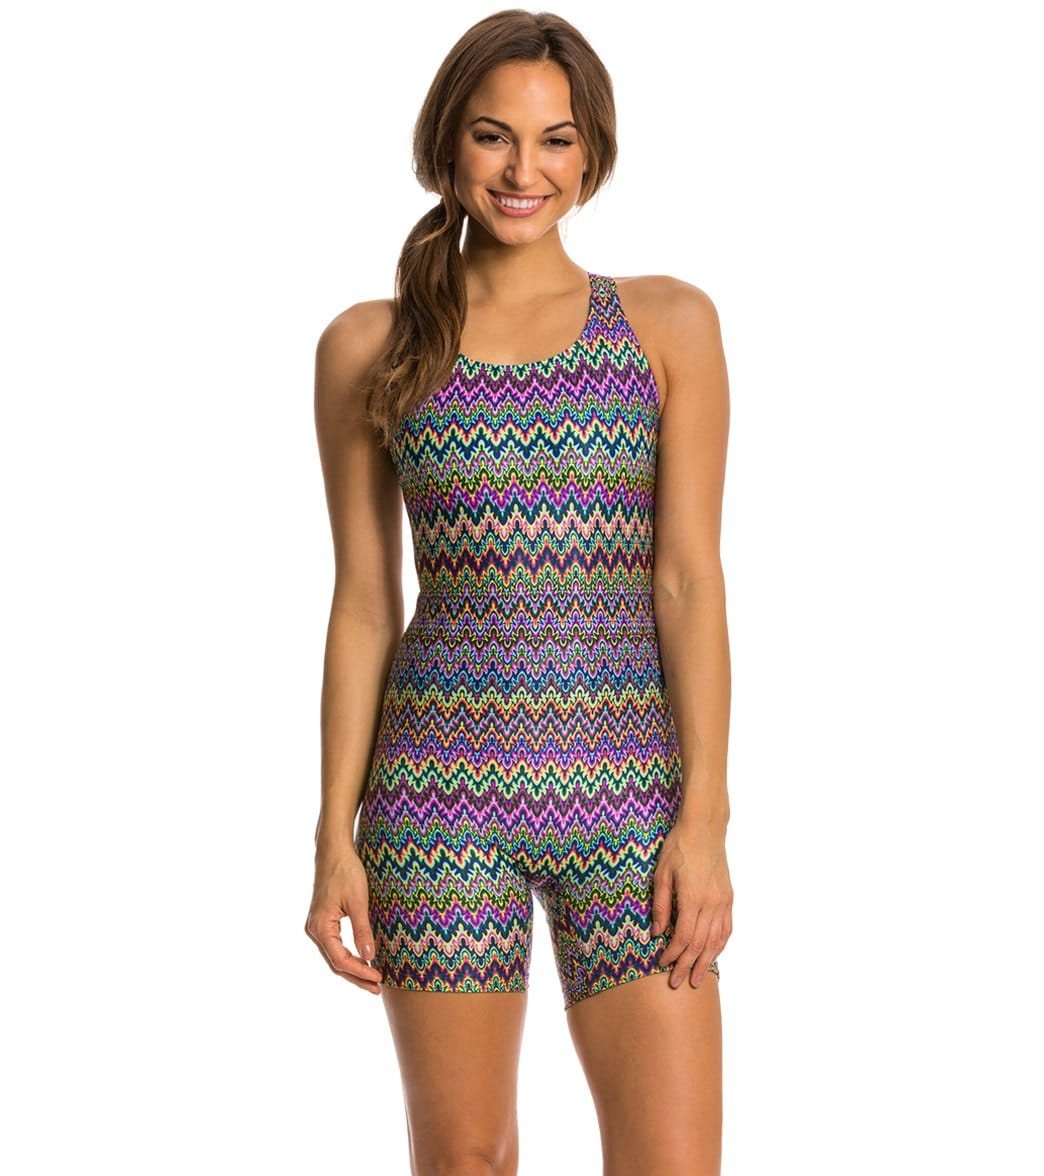 EQ Swimwear Spectrum Print Polyester Unitard